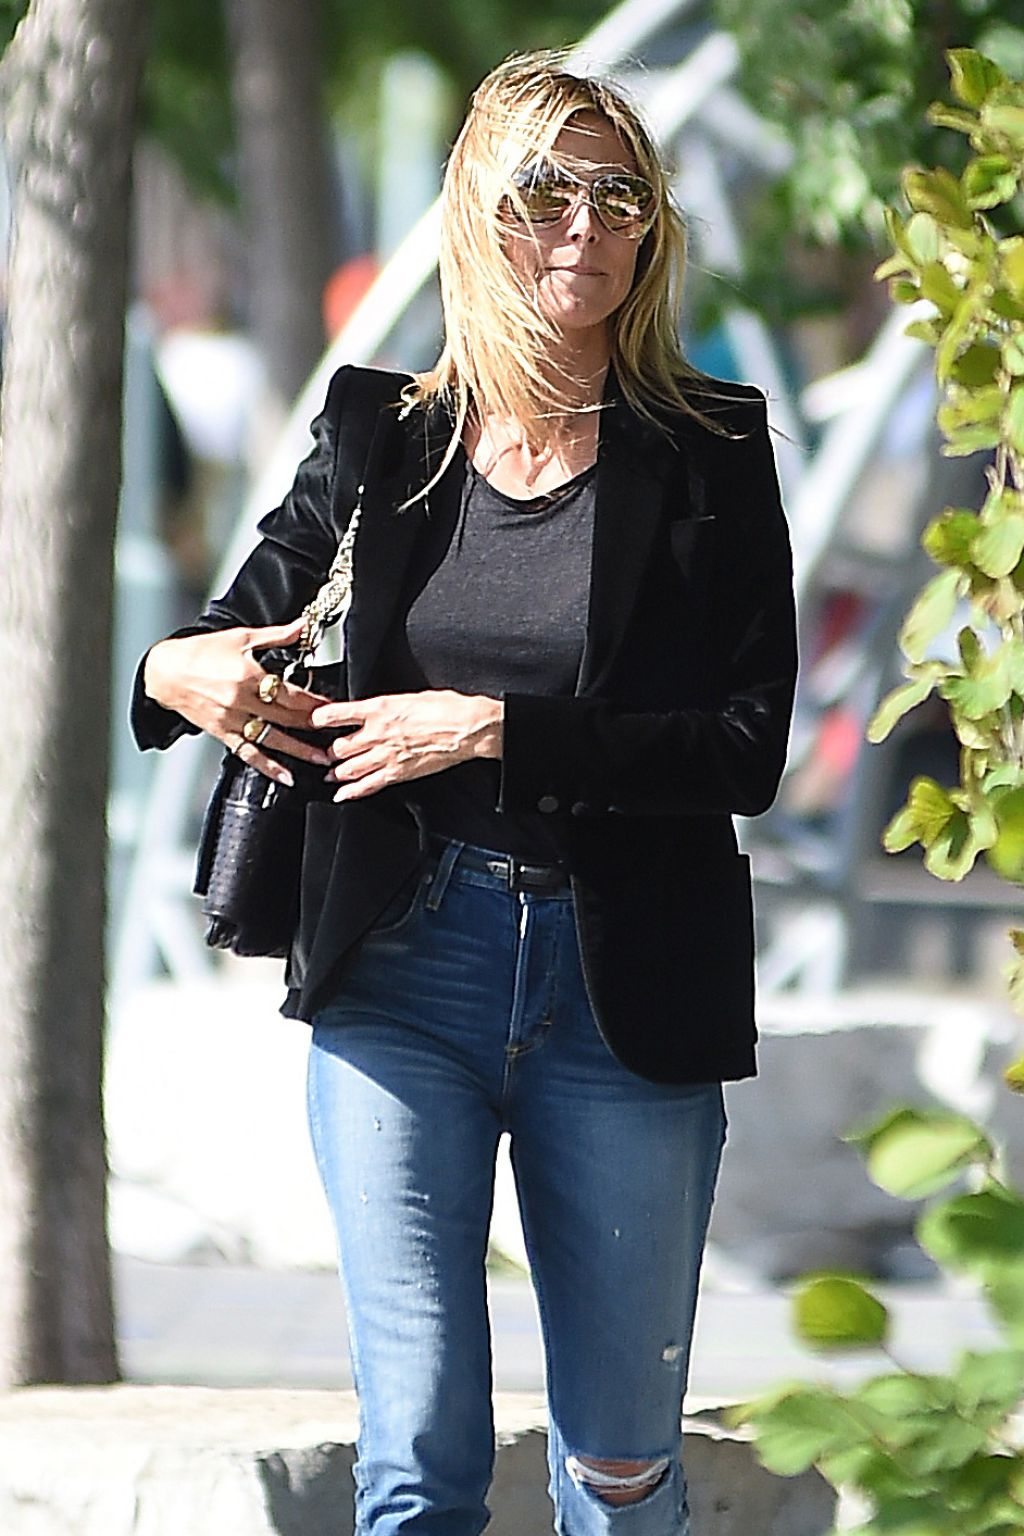 Heidi Klum Enjoys Some Time With Her Kids At The